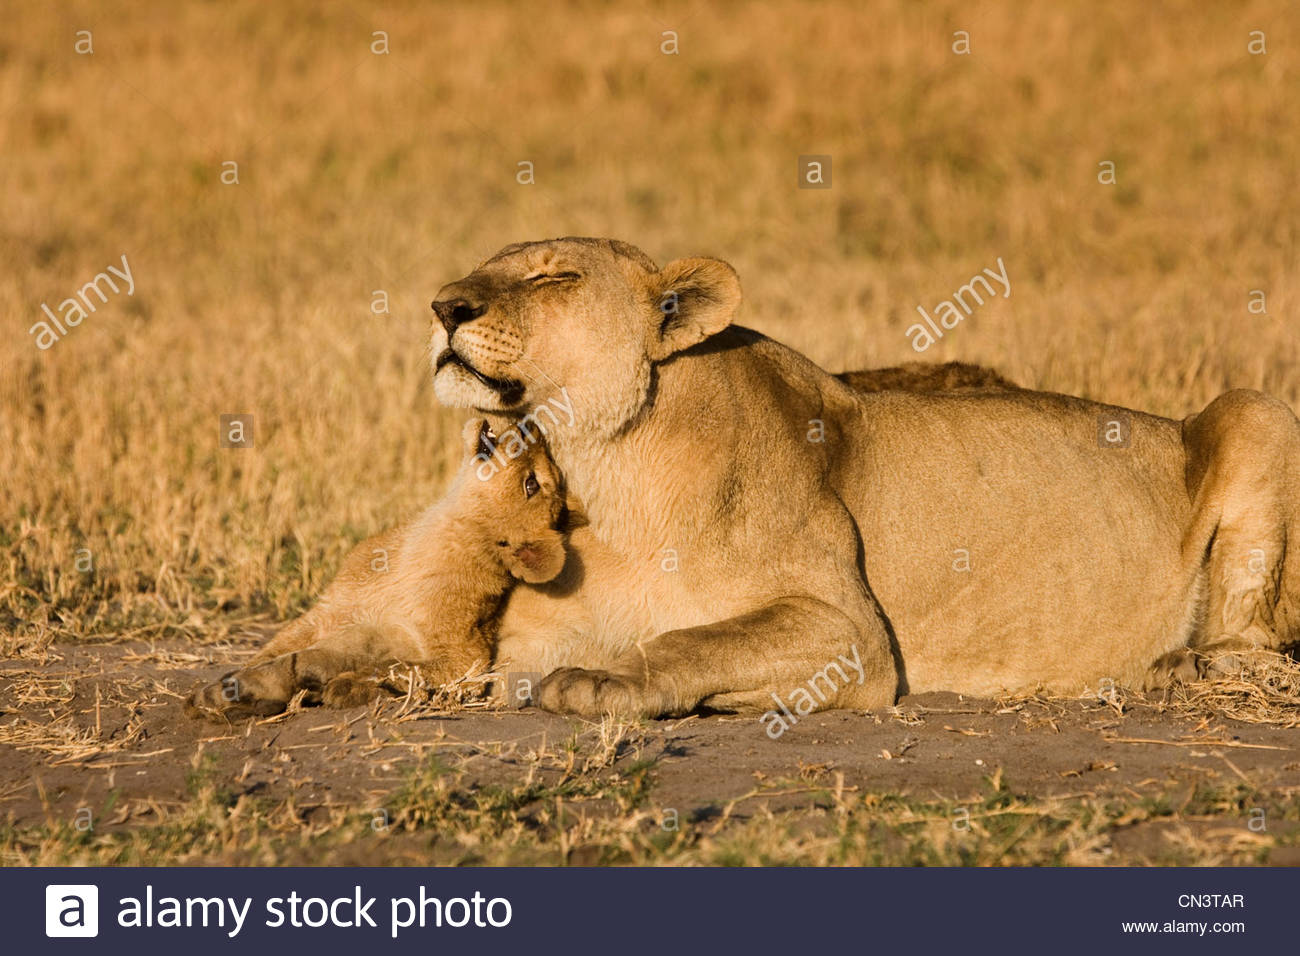 An African Lion cub plays with his mother as they rest in Botswana. - Stock Image